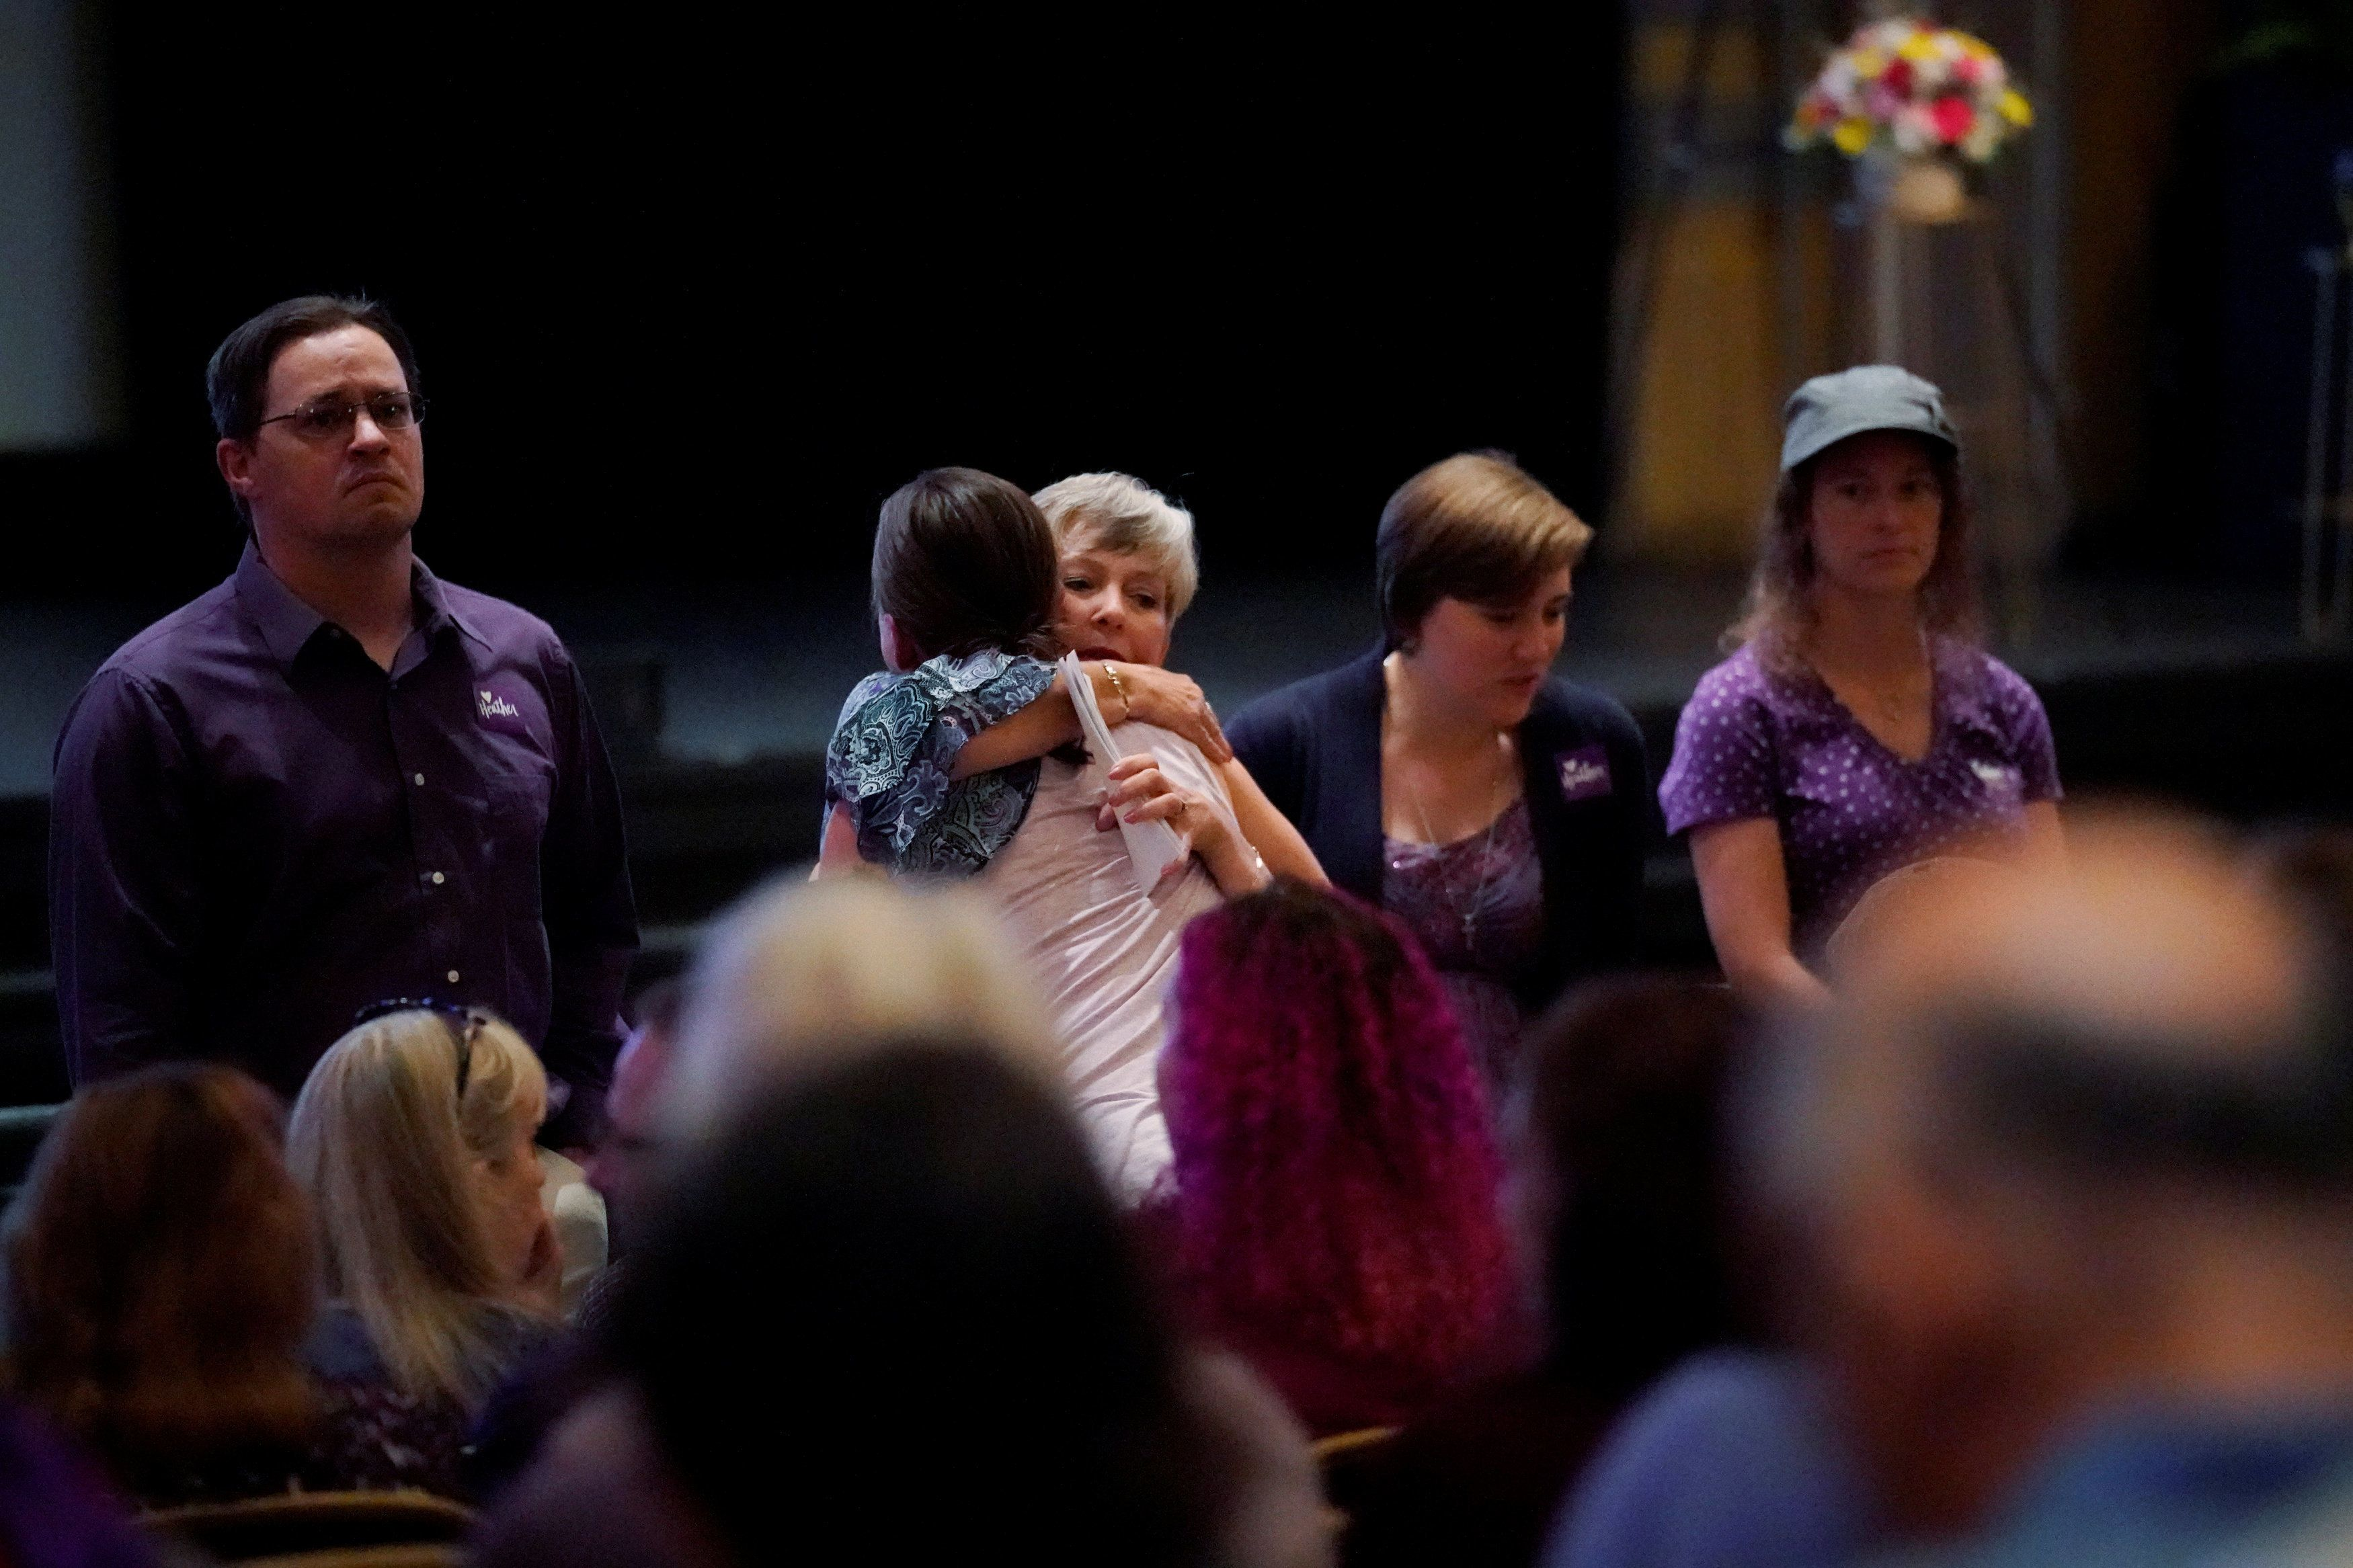 Mourners gather inside the Paramount Theater for a memorial service forHeather Heyer.